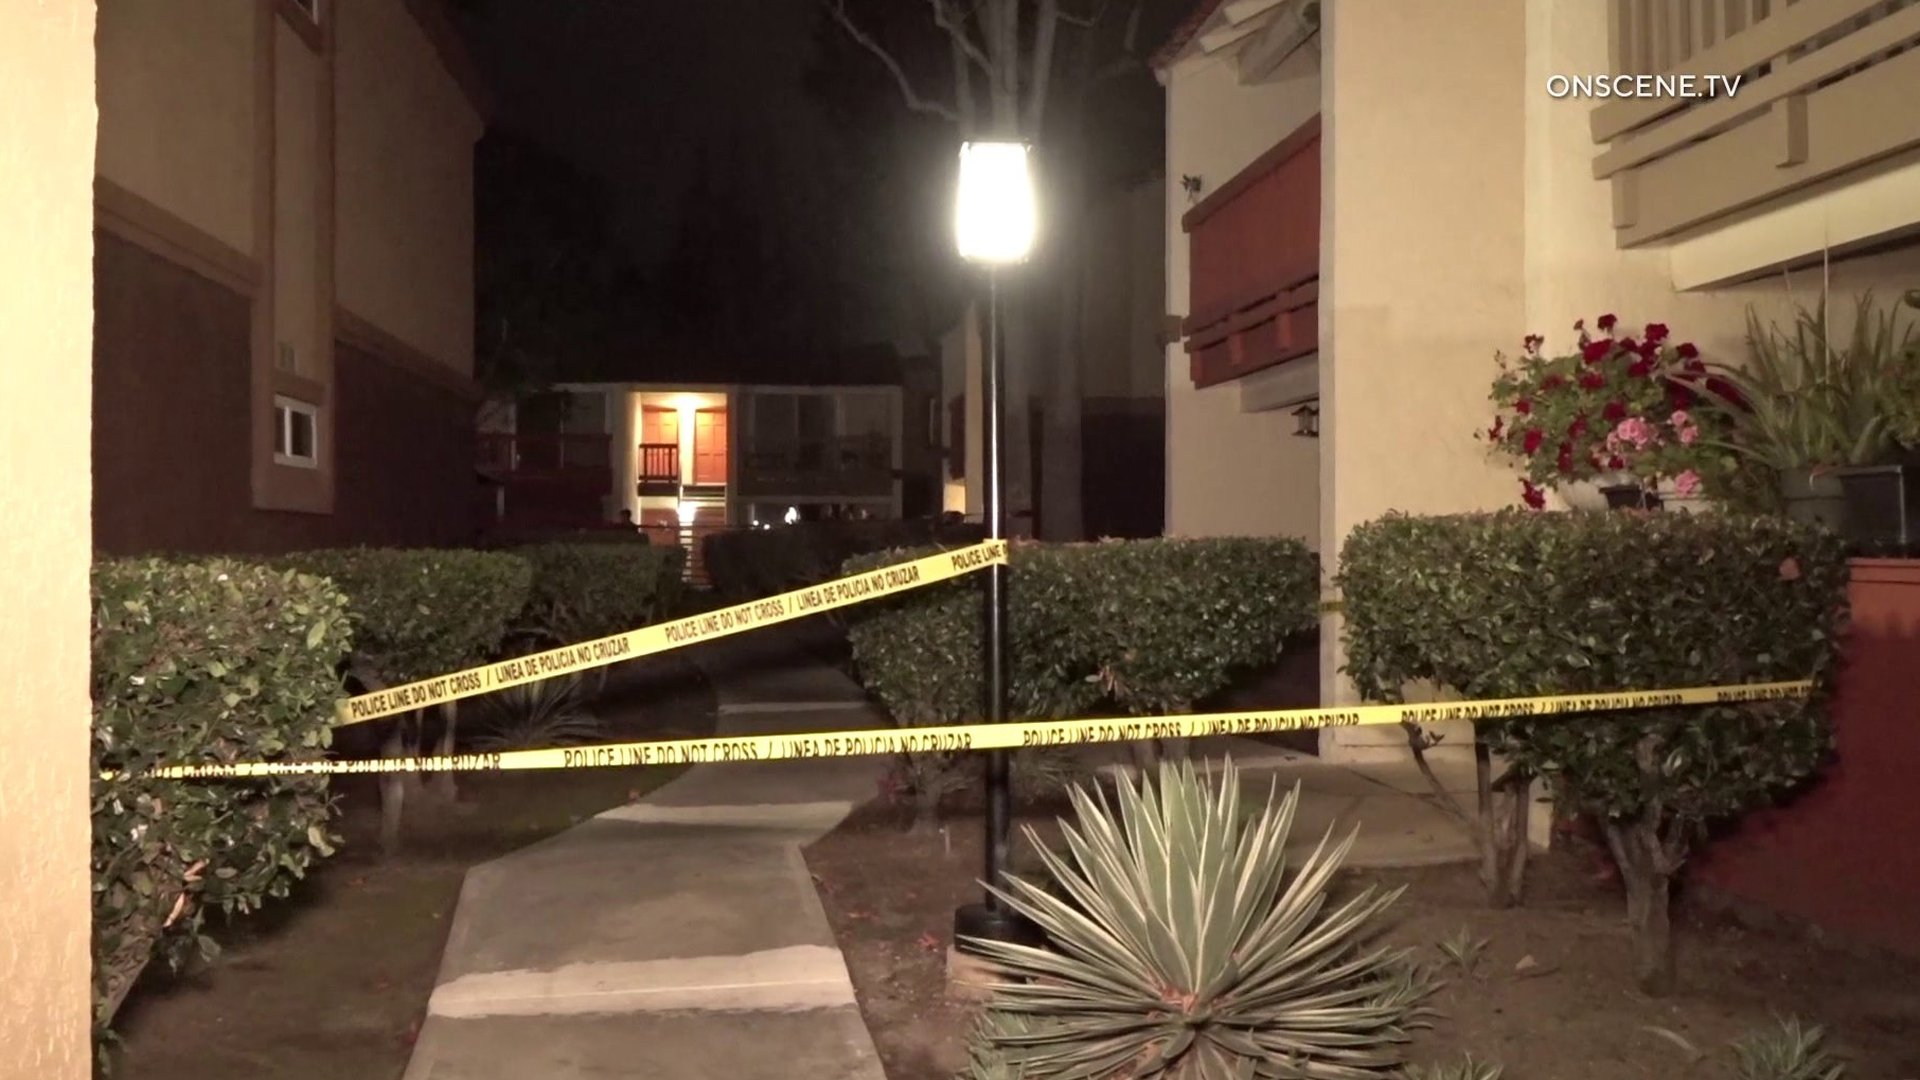 An investigation was underway at a Fountain Valley apartment complex after an allegedly armed man was fatally shot by Santa Ana police on Jan. 21, 2020. (Credit: OnScene.TV)